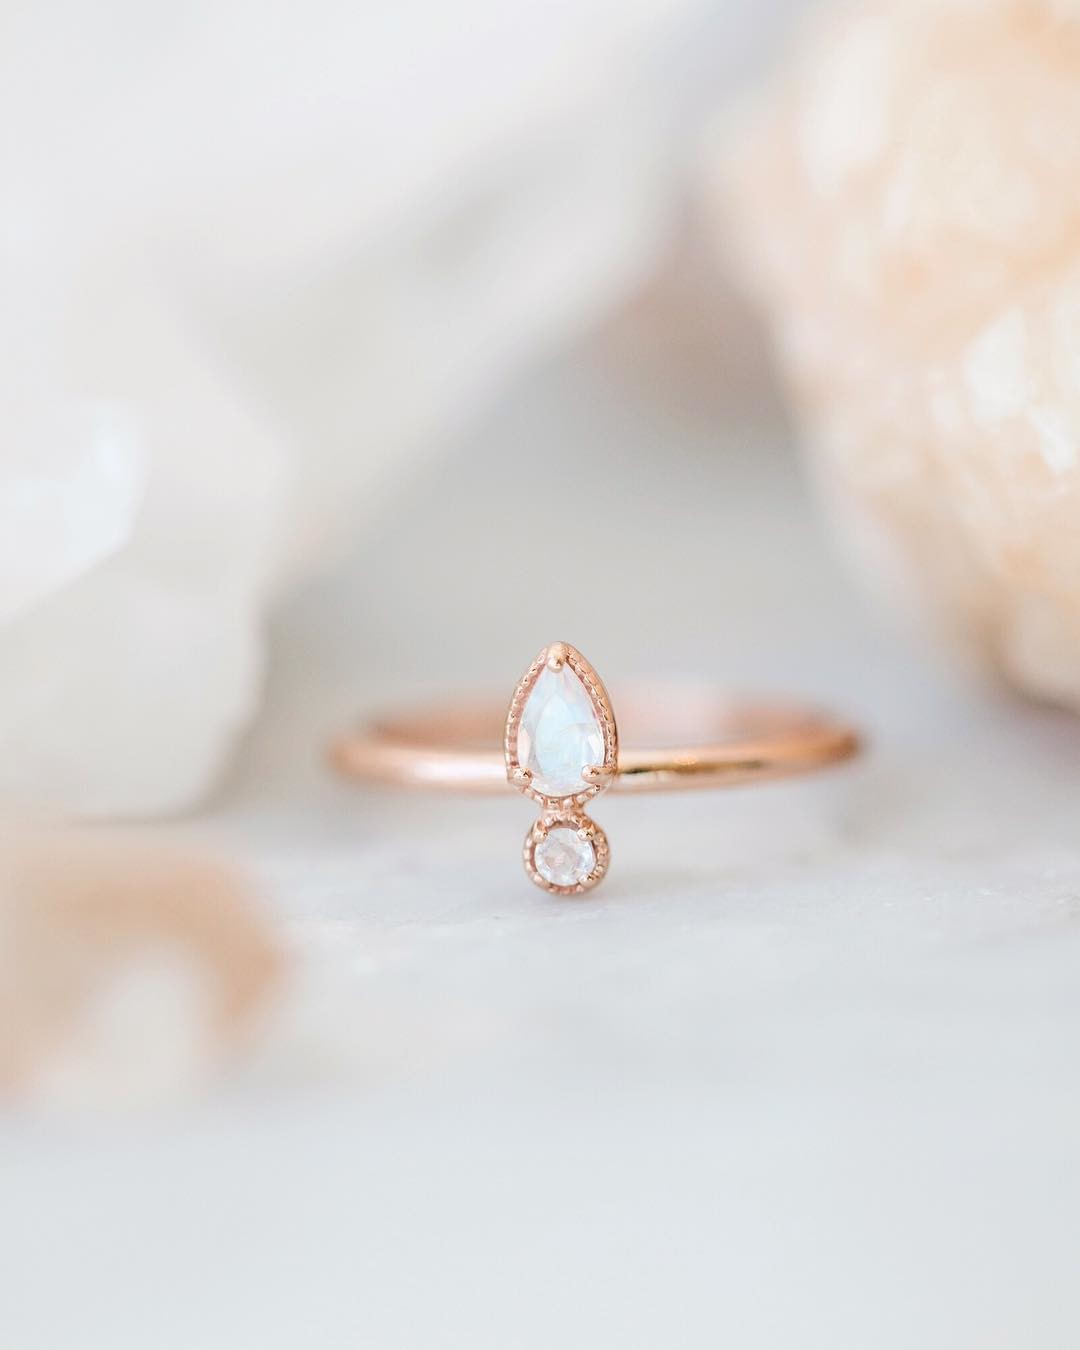 Want to win this magical moonstone ring in 14k rose gold?! Head over to this post on